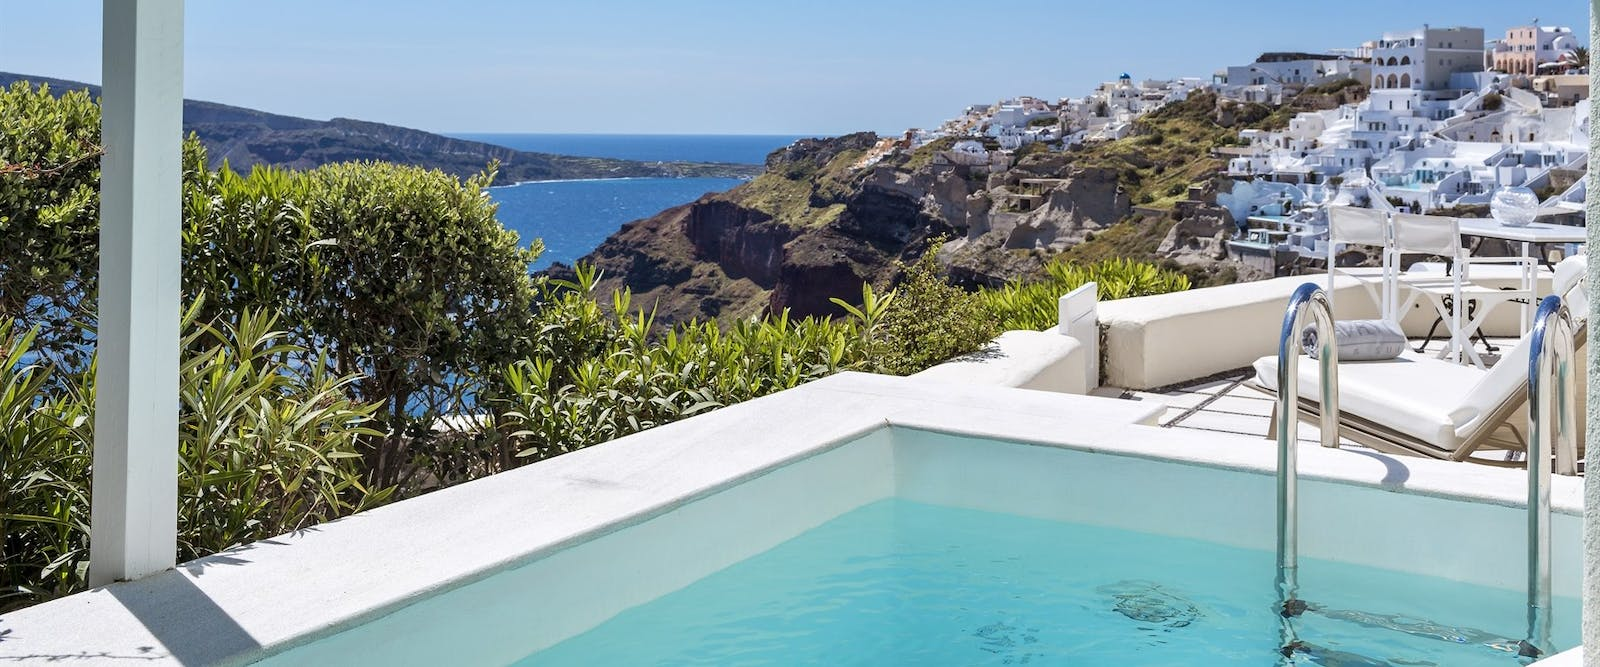 Private Pool at Canaves Oia Hotel, Santorini, Greece